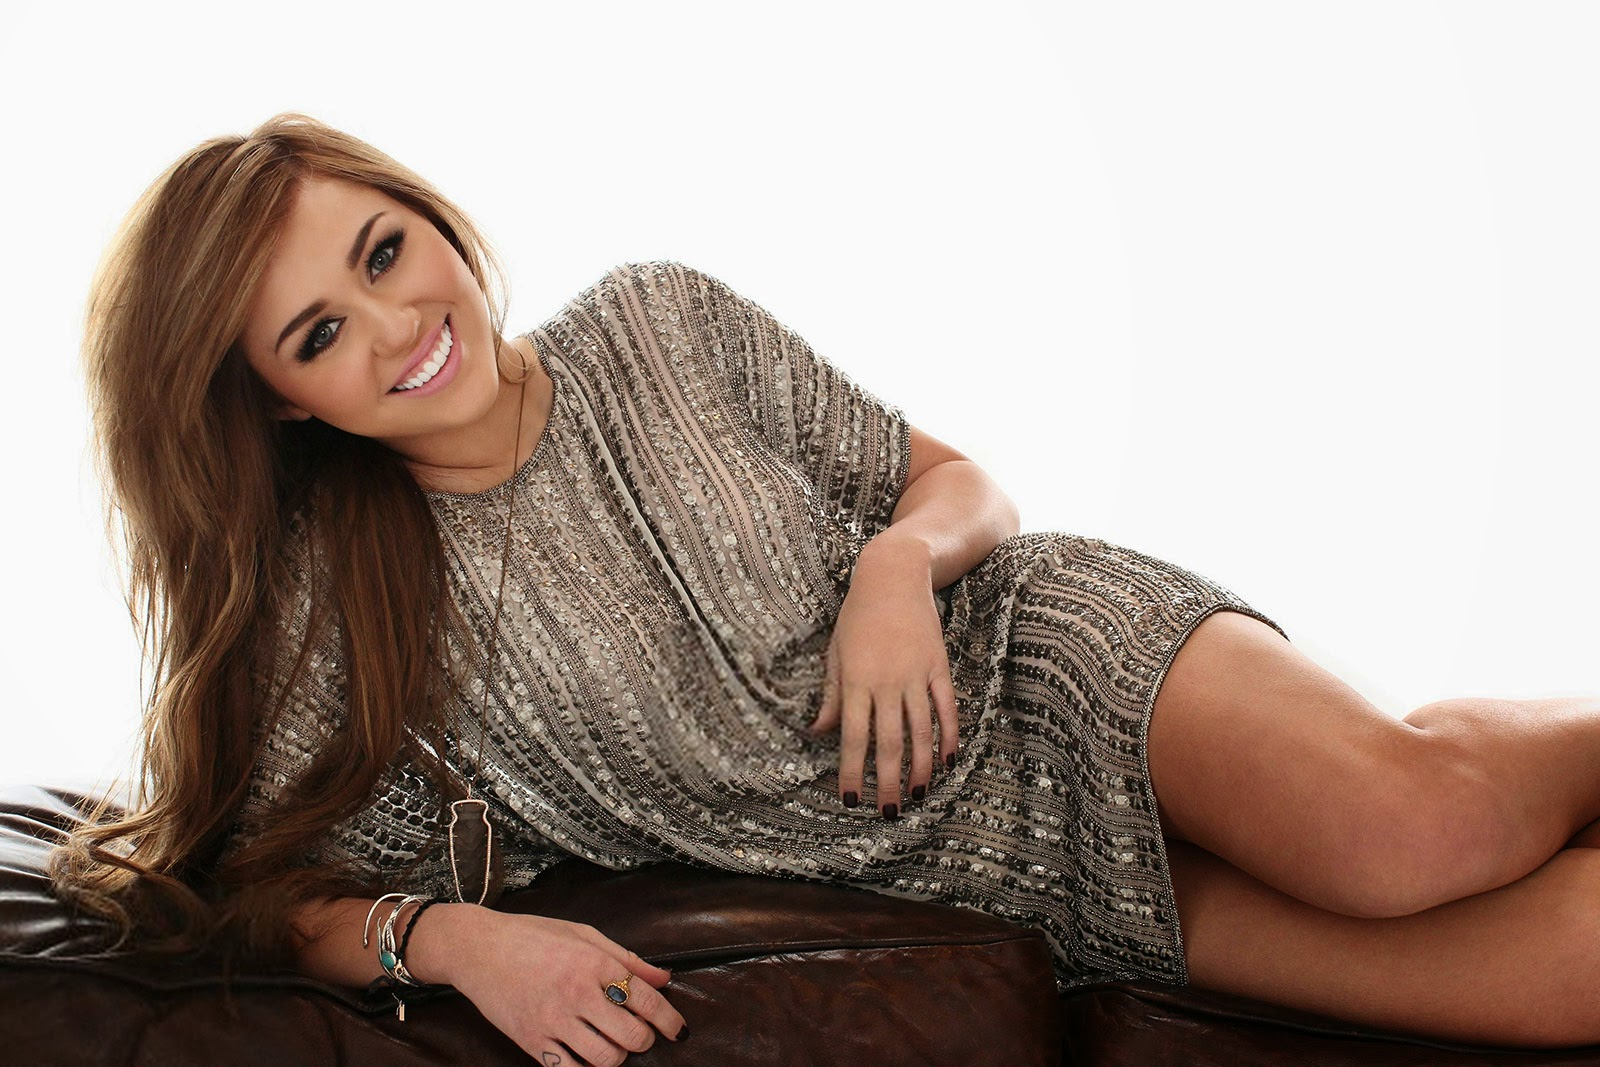 Smiling Miley Cyrus Wearing Beautiful Dress Wallpaper